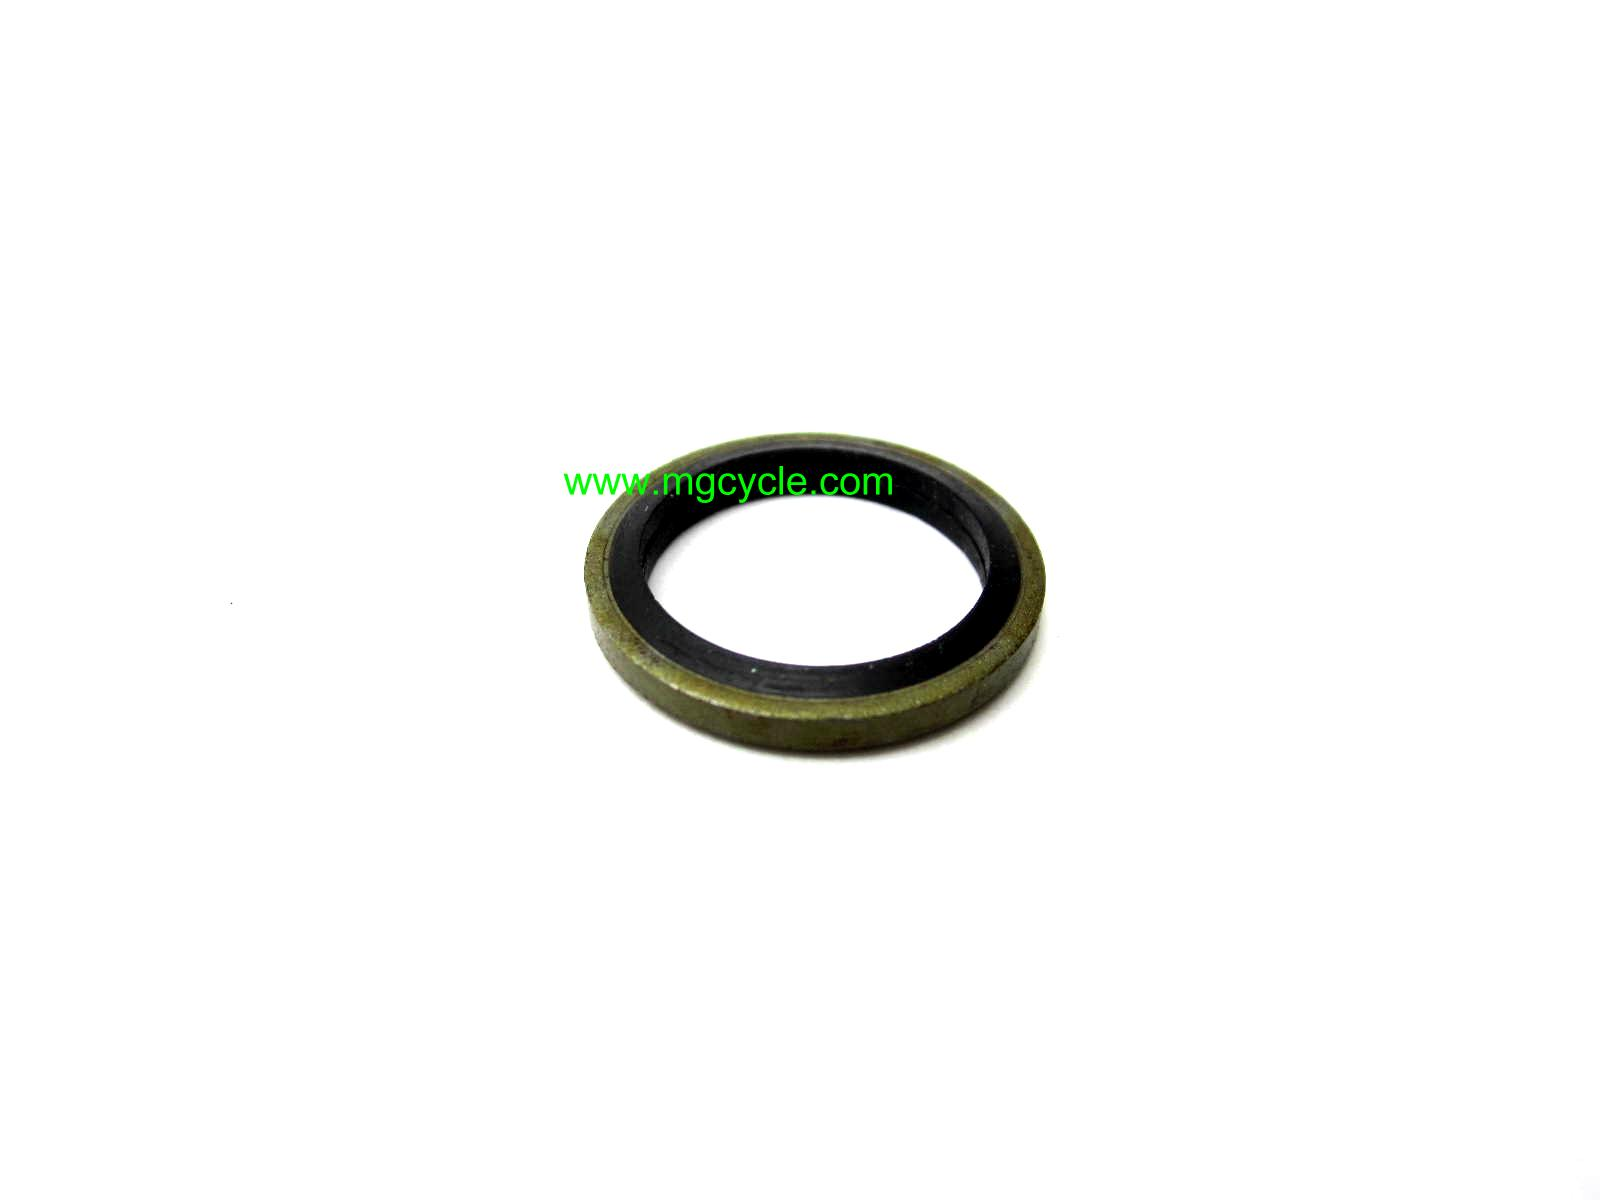 16mm ID sealing washer with rubber seal many models 1999 on